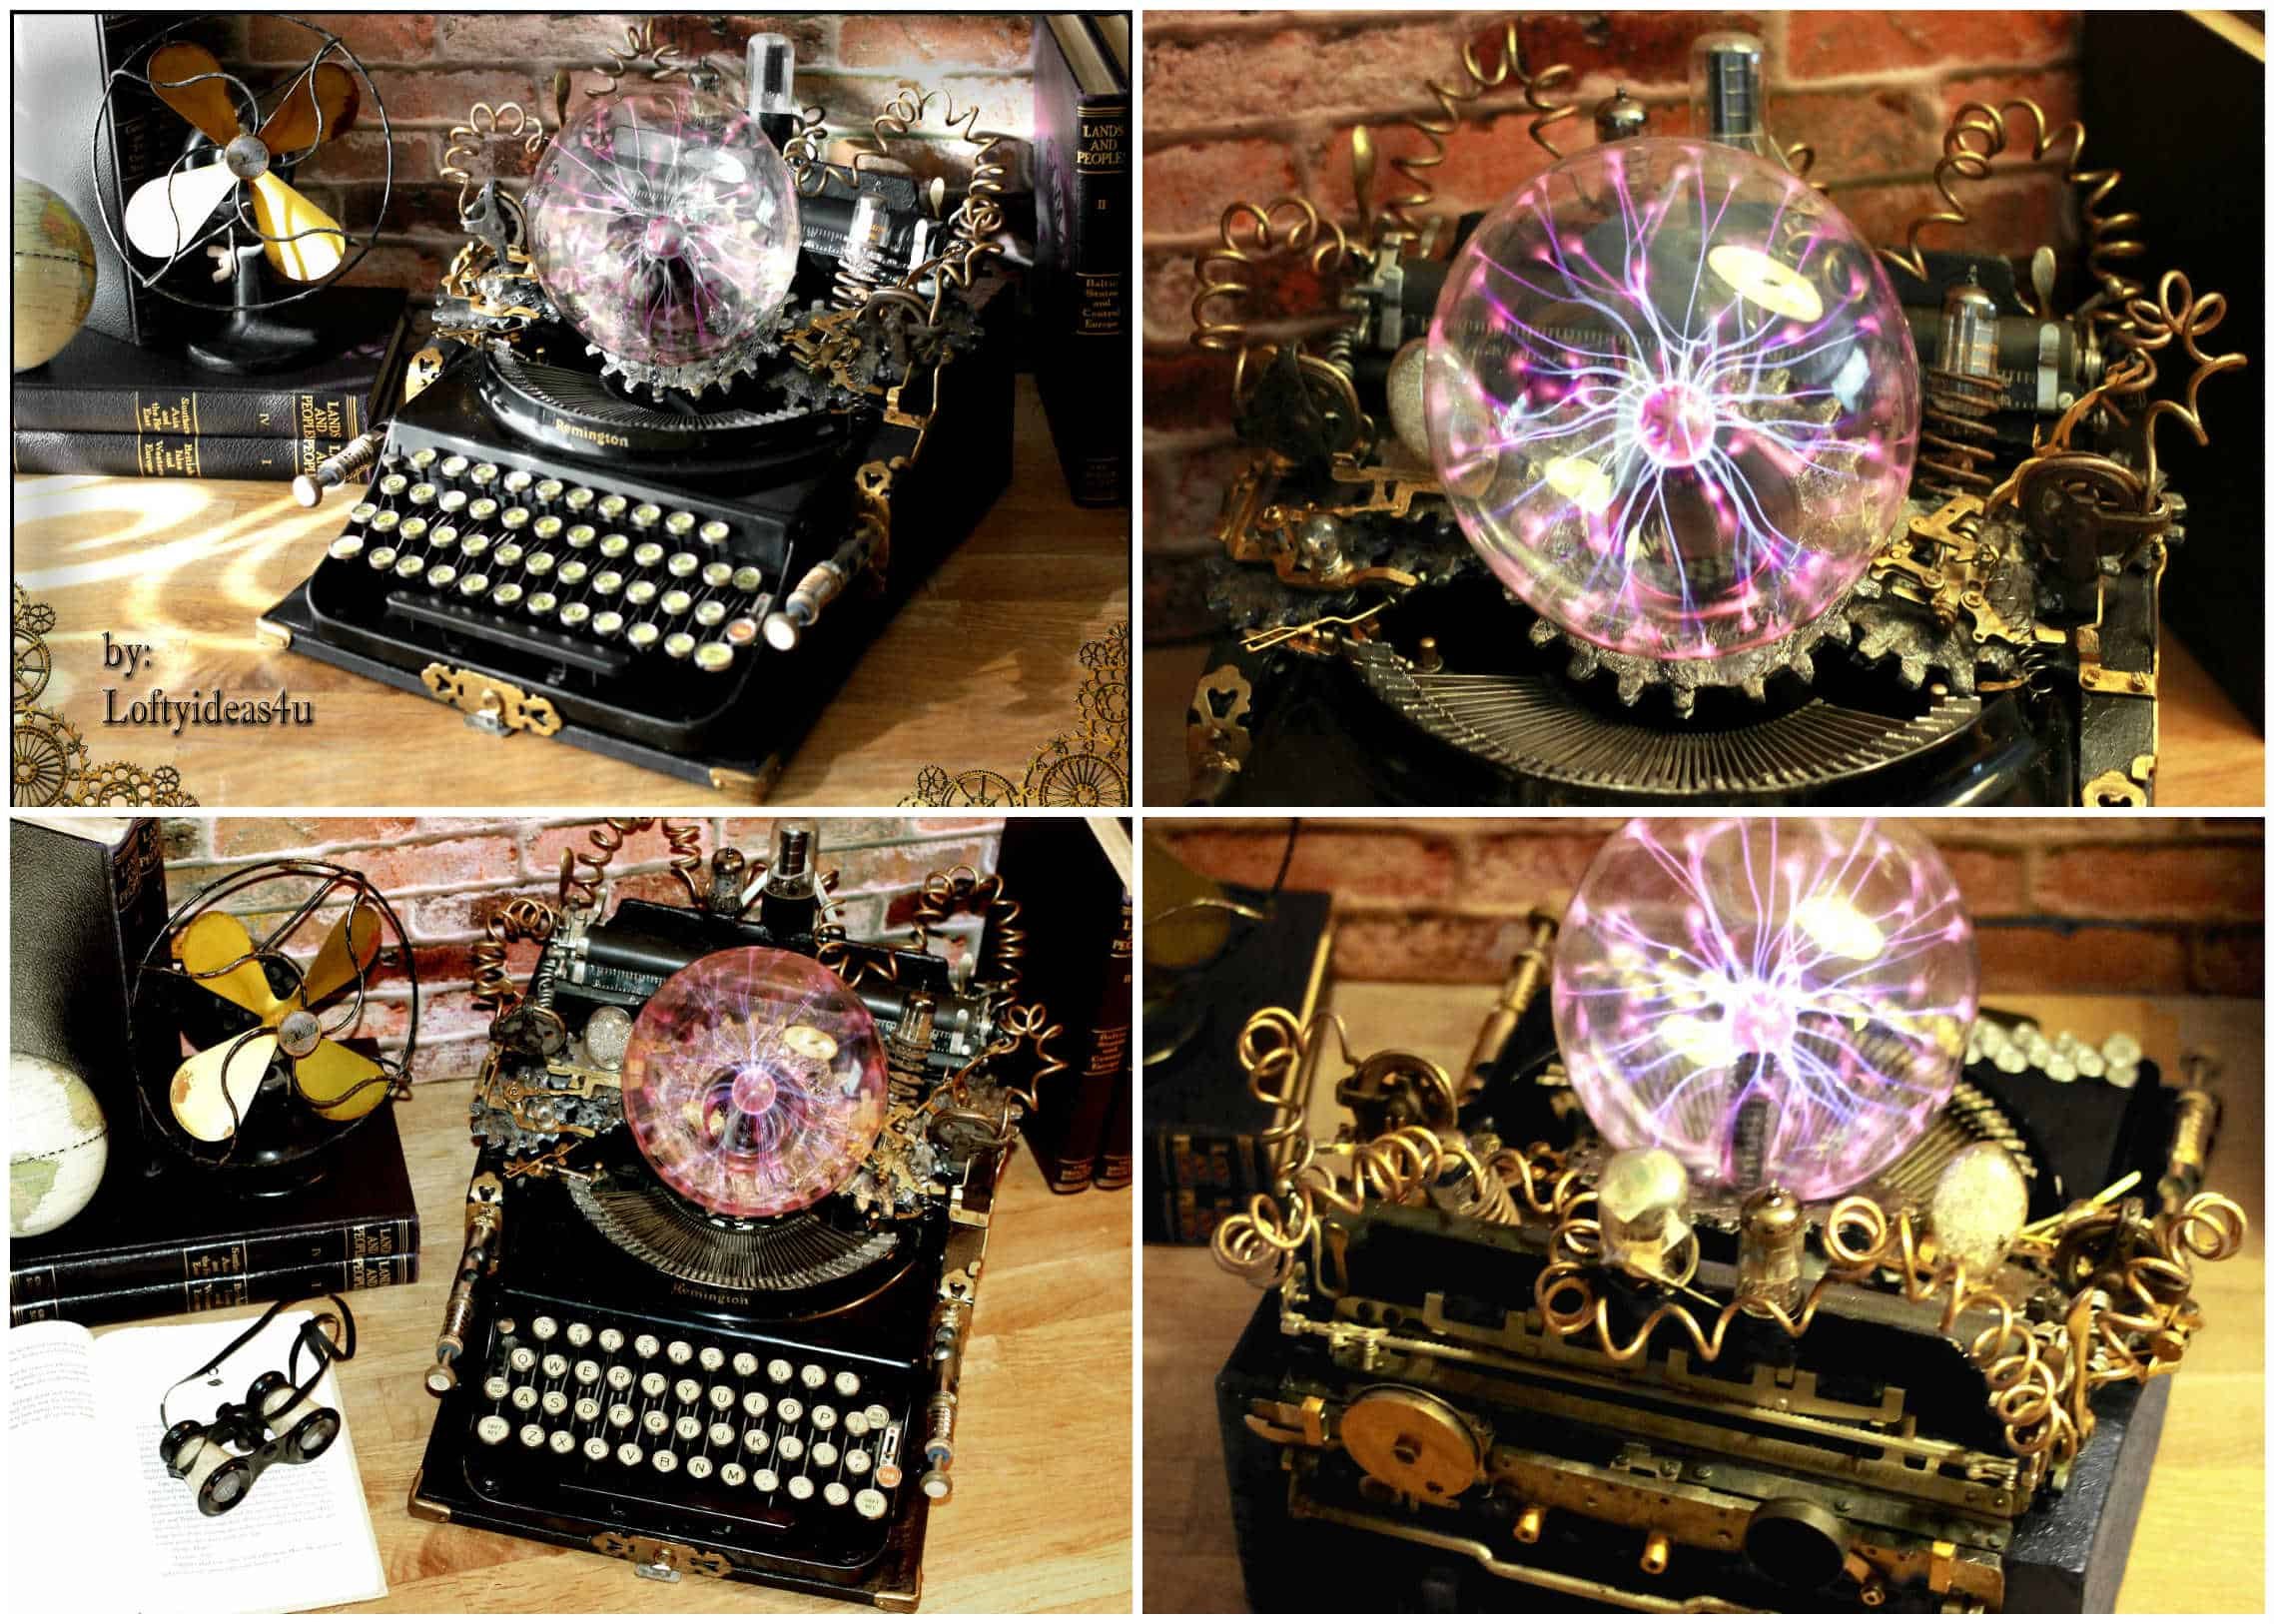 Steampunk Upcycled Vintage 1920 Remington Typewriter